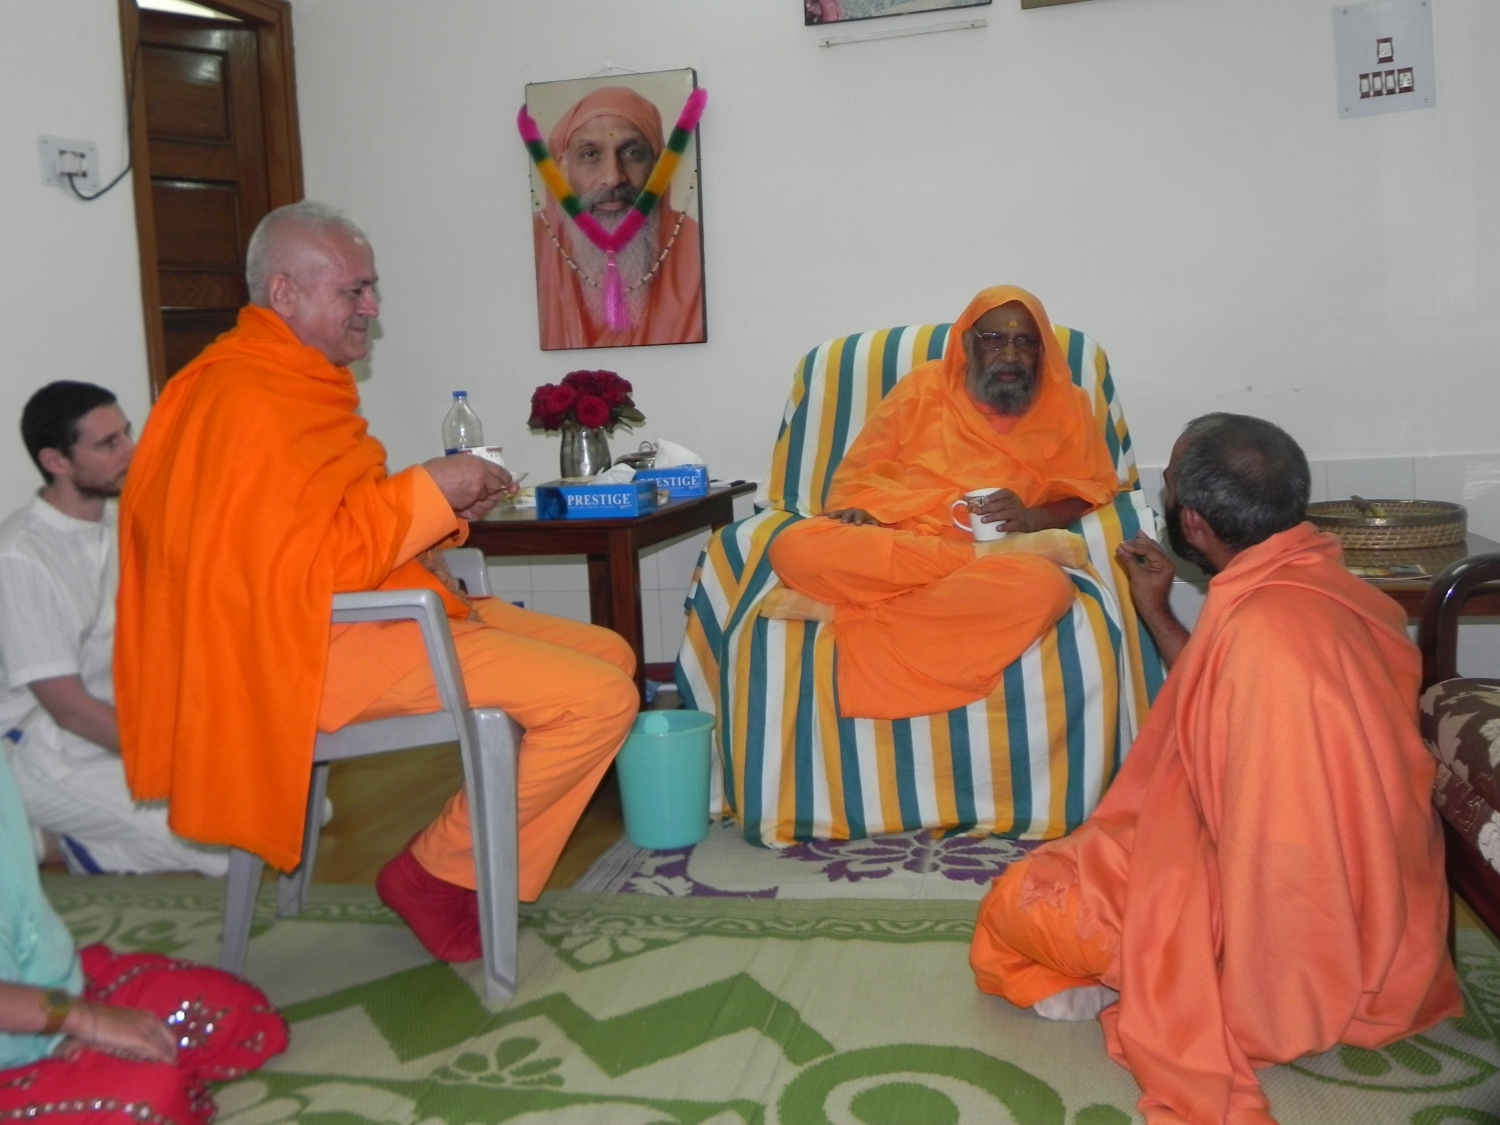 Meeting of H.H. Jagat Guru Amrta Sūryānanda Mahā Rāja with H.H. Pujiya Svámin Dayánanda Sarasvatí - rshikesh, India - 2013, March